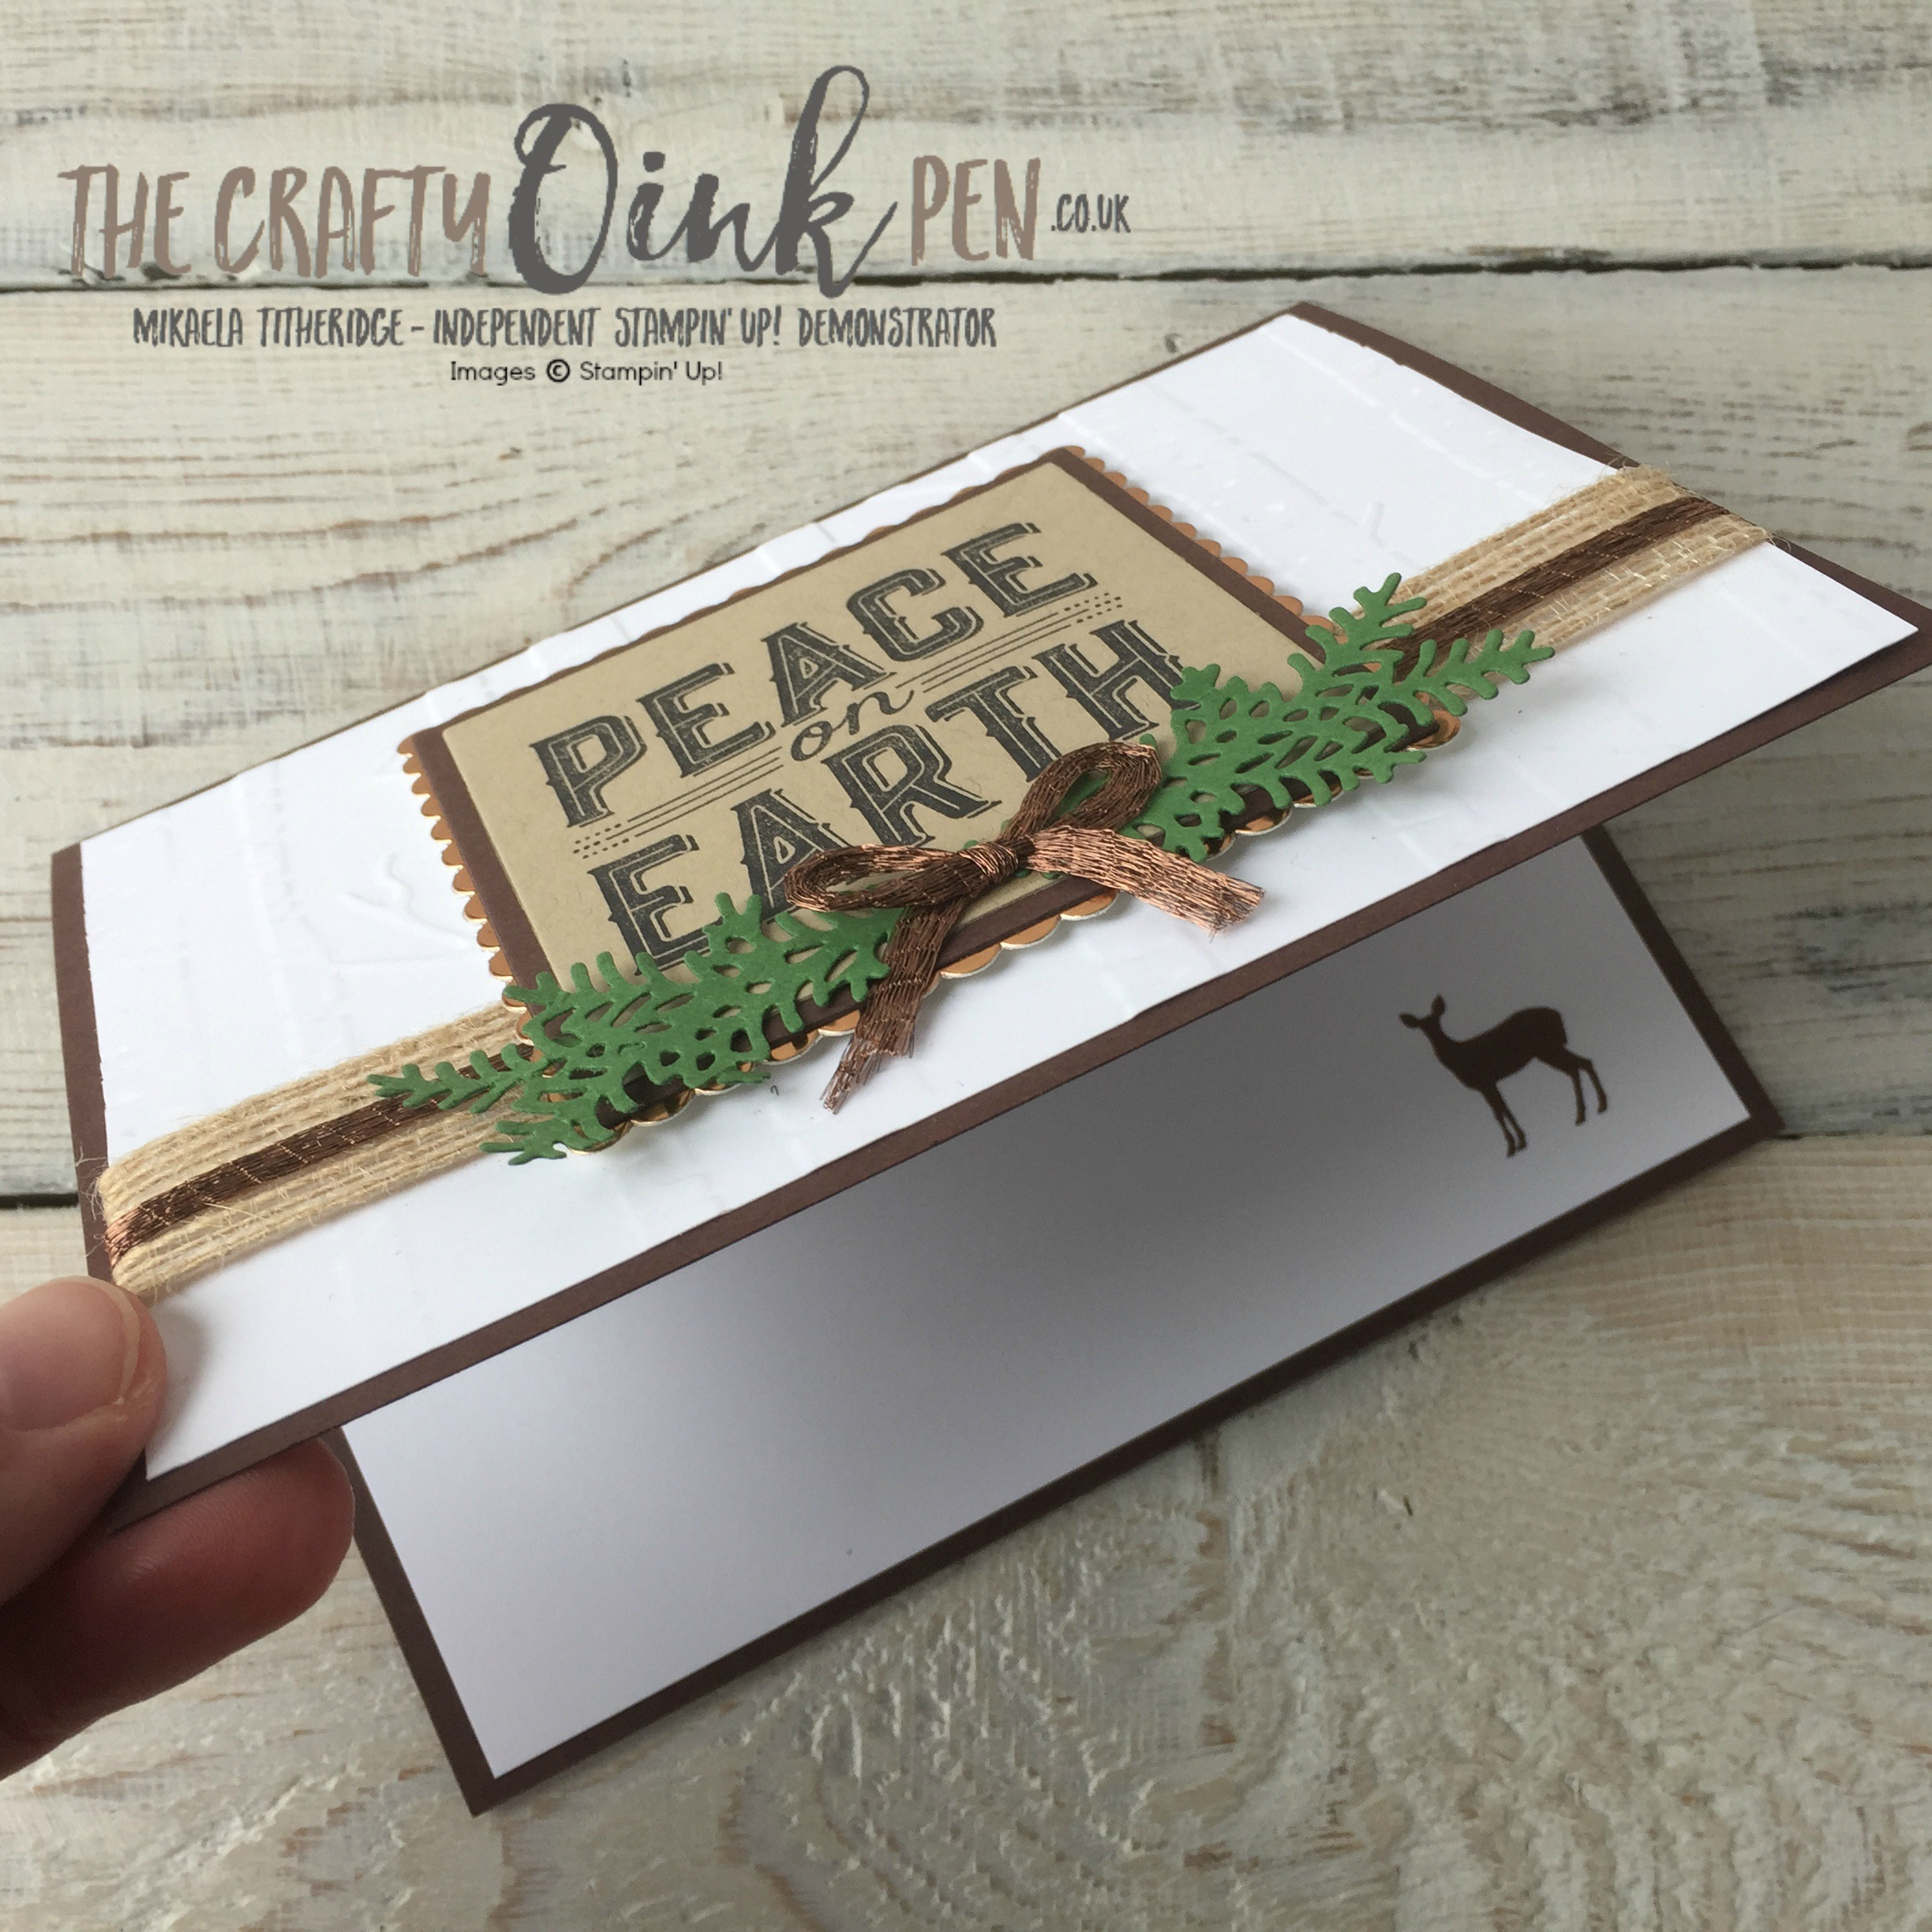 Mikaela Titheridge, The Crafty oINK Pen, UK Stampin' Up! Demonstrator brings you Carols of Christmas